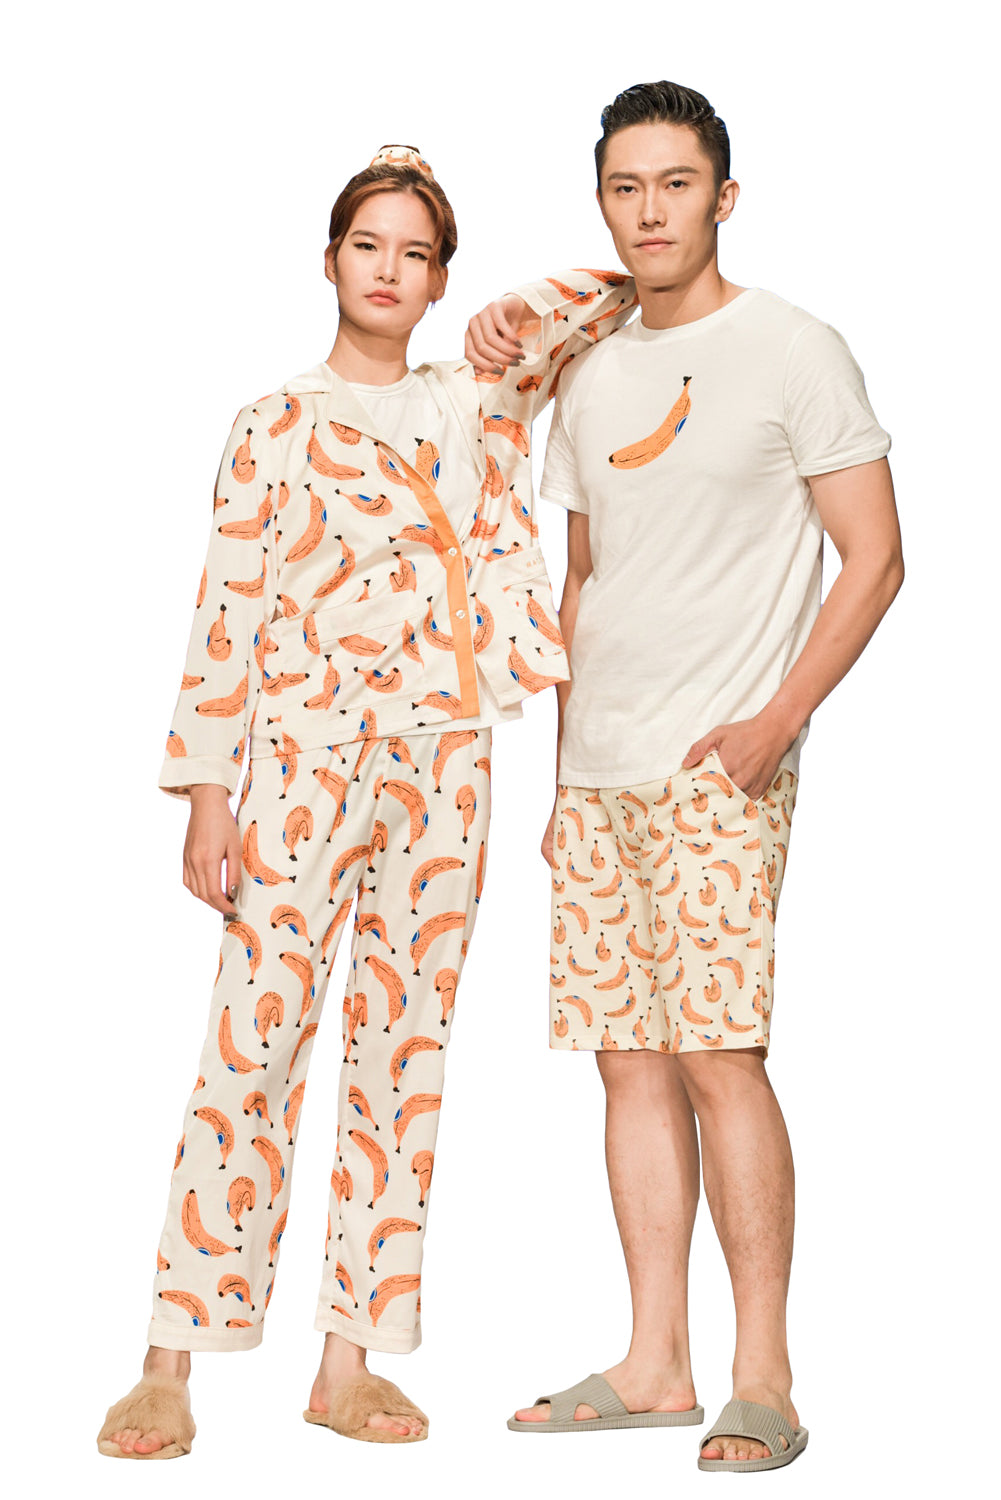 Banana Long-Sleeve Pajamas Set